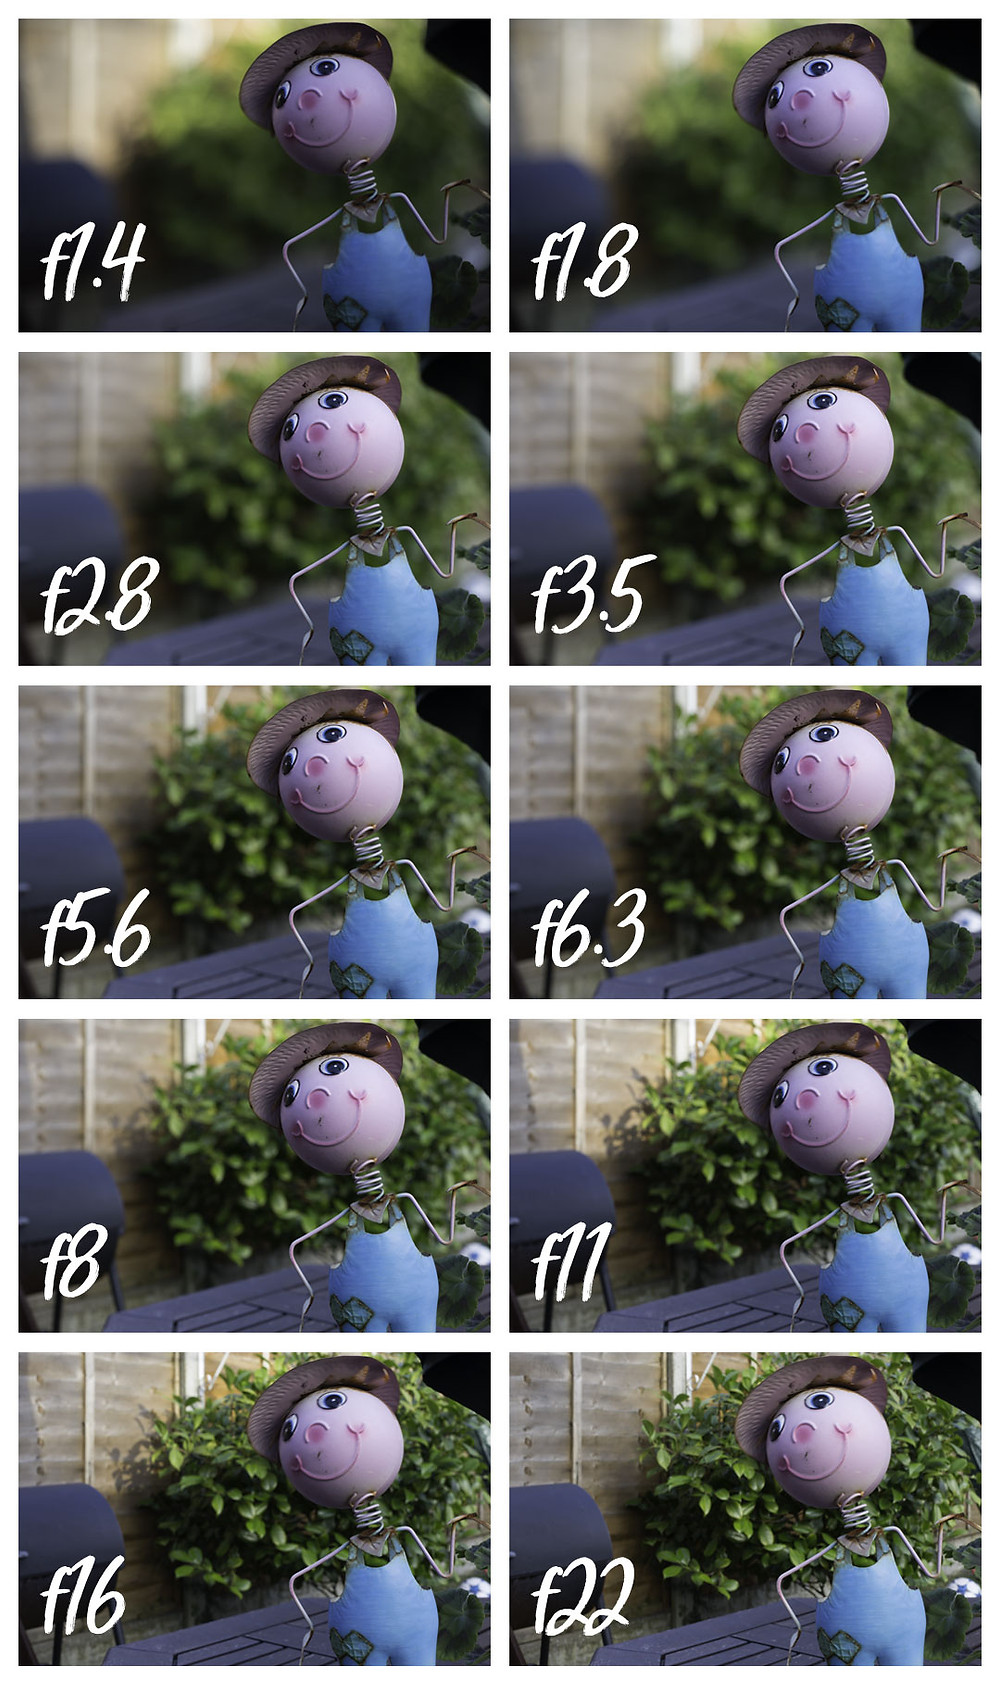 Demonstration of the difference between the various apertures of the canon 50mm f1.4